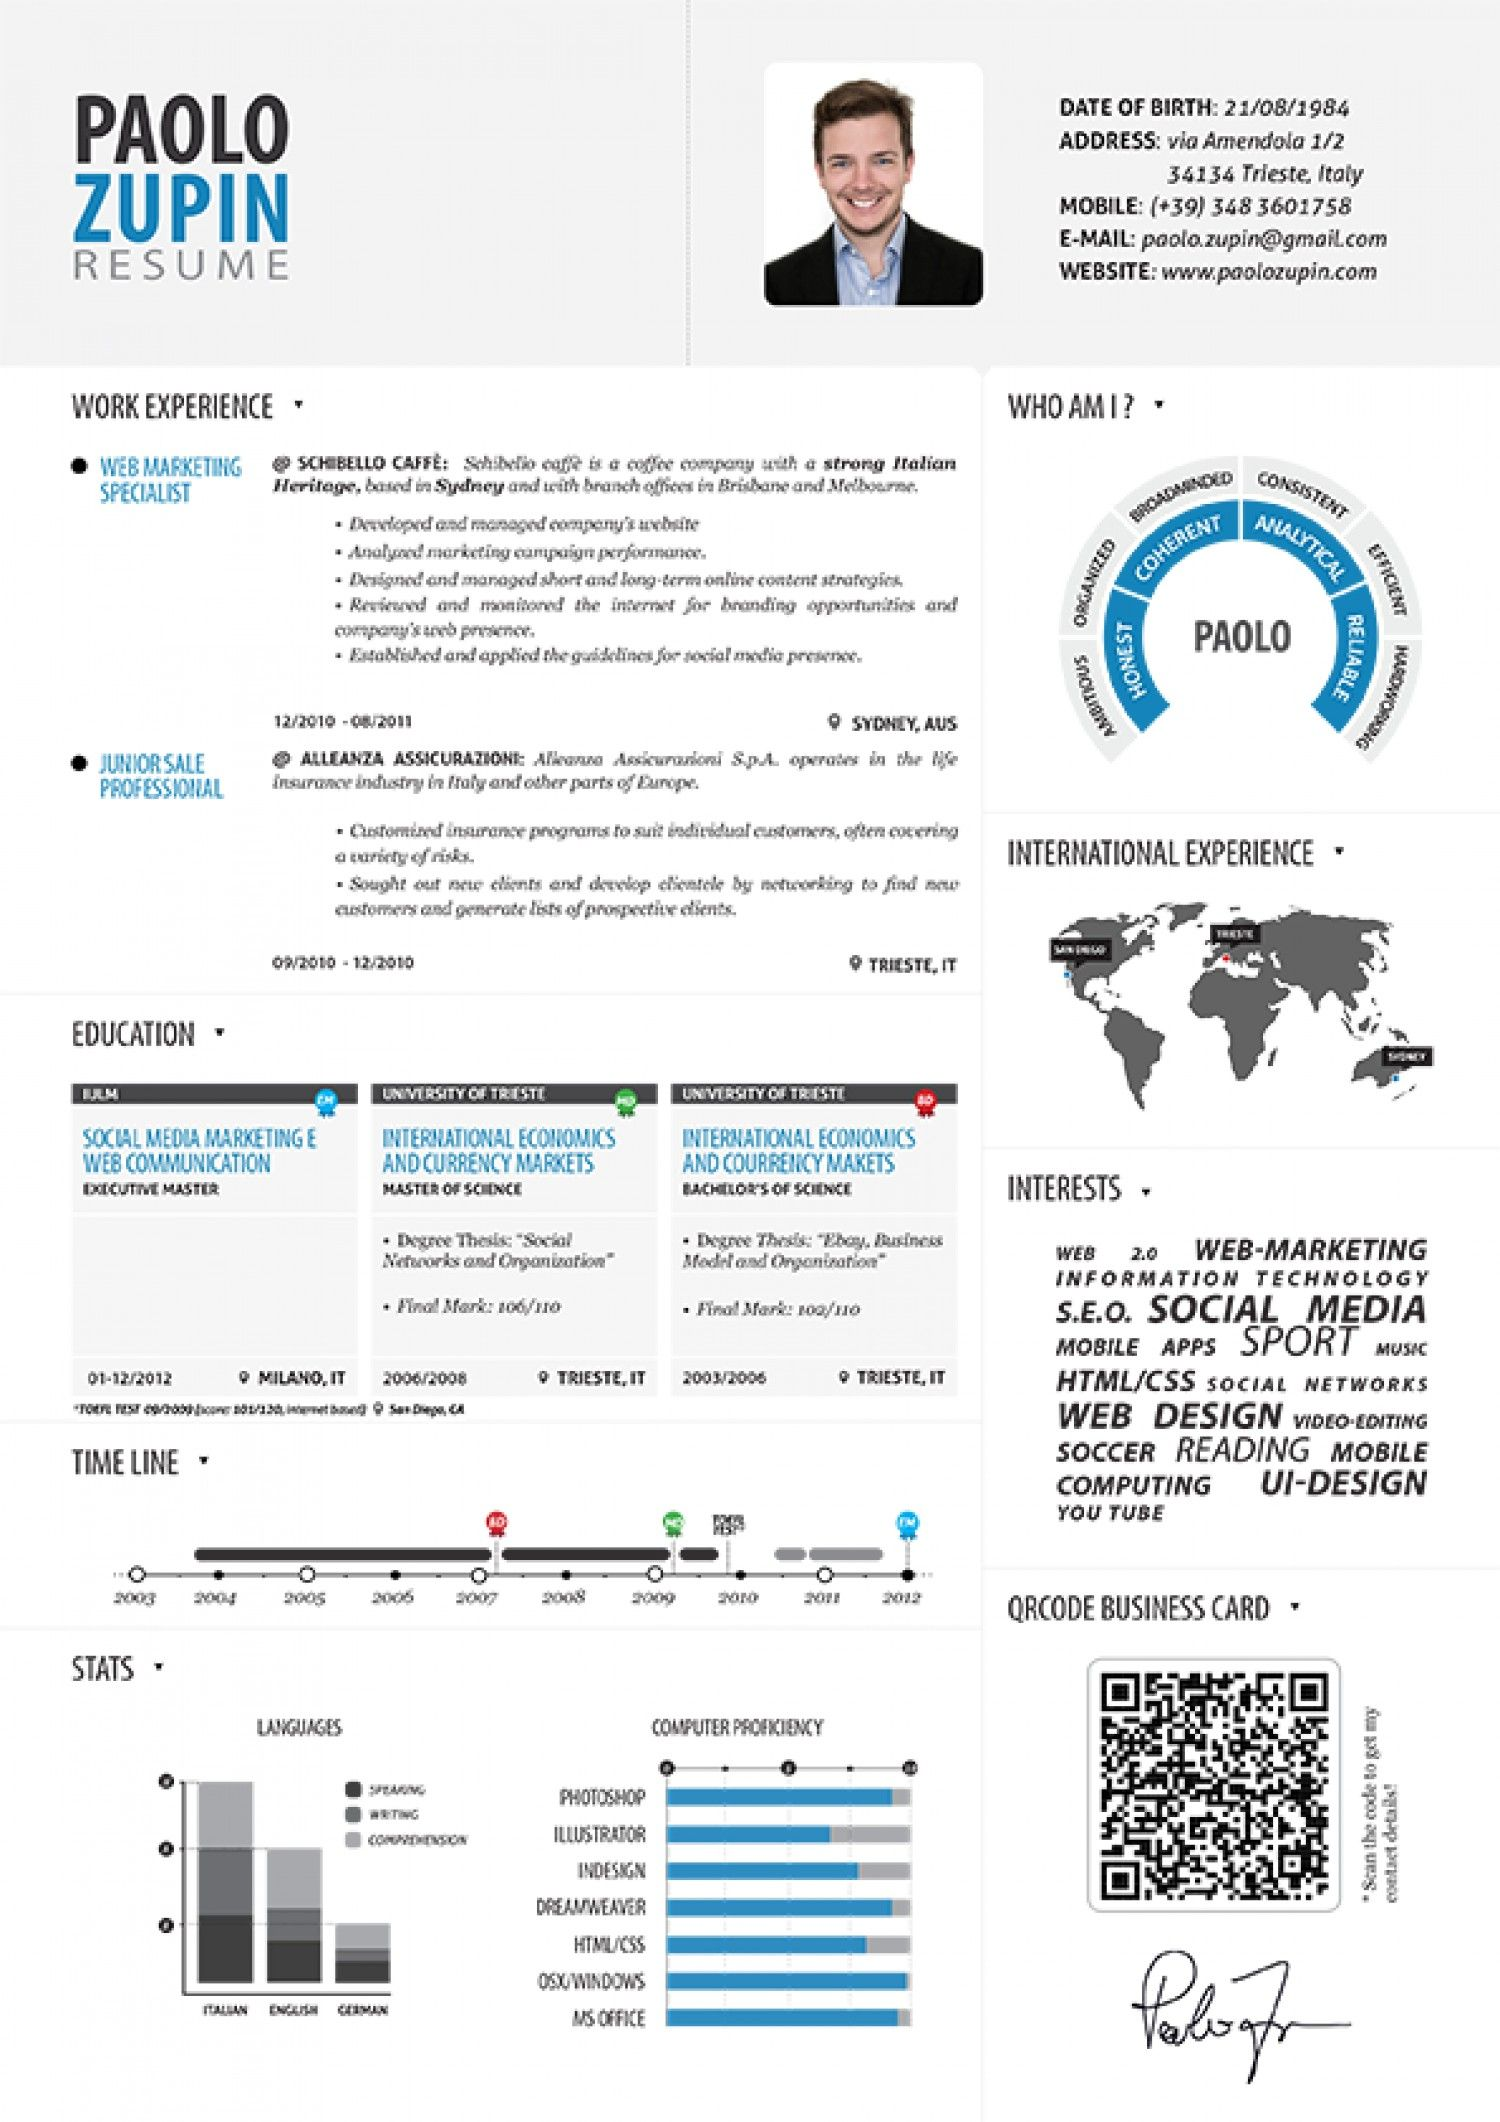 Opposenewapstandardsus  Mesmerizing  Images About Resume  Cv Design On Pinterest  Infographic  With Hot  Images About Resume  Cv Design On Pinterest  Infographic Resume Resume And Resume Design With Charming Should I Have An Objective On My Resume Also First Time Resume Template In Addition Resume For Welder And Program Manager Resume Examples As Well As Fresher Resume Additionally High School Student Resume Example From Pinterestcom With Opposenewapstandardsus  Hot  Images About Resume  Cv Design On Pinterest  Infographic  With Charming  Images About Resume  Cv Design On Pinterest  Infographic Resume Resume And Resume Design And Mesmerizing Should I Have An Objective On My Resume Also First Time Resume Template In Addition Resume For Welder From Pinterestcom